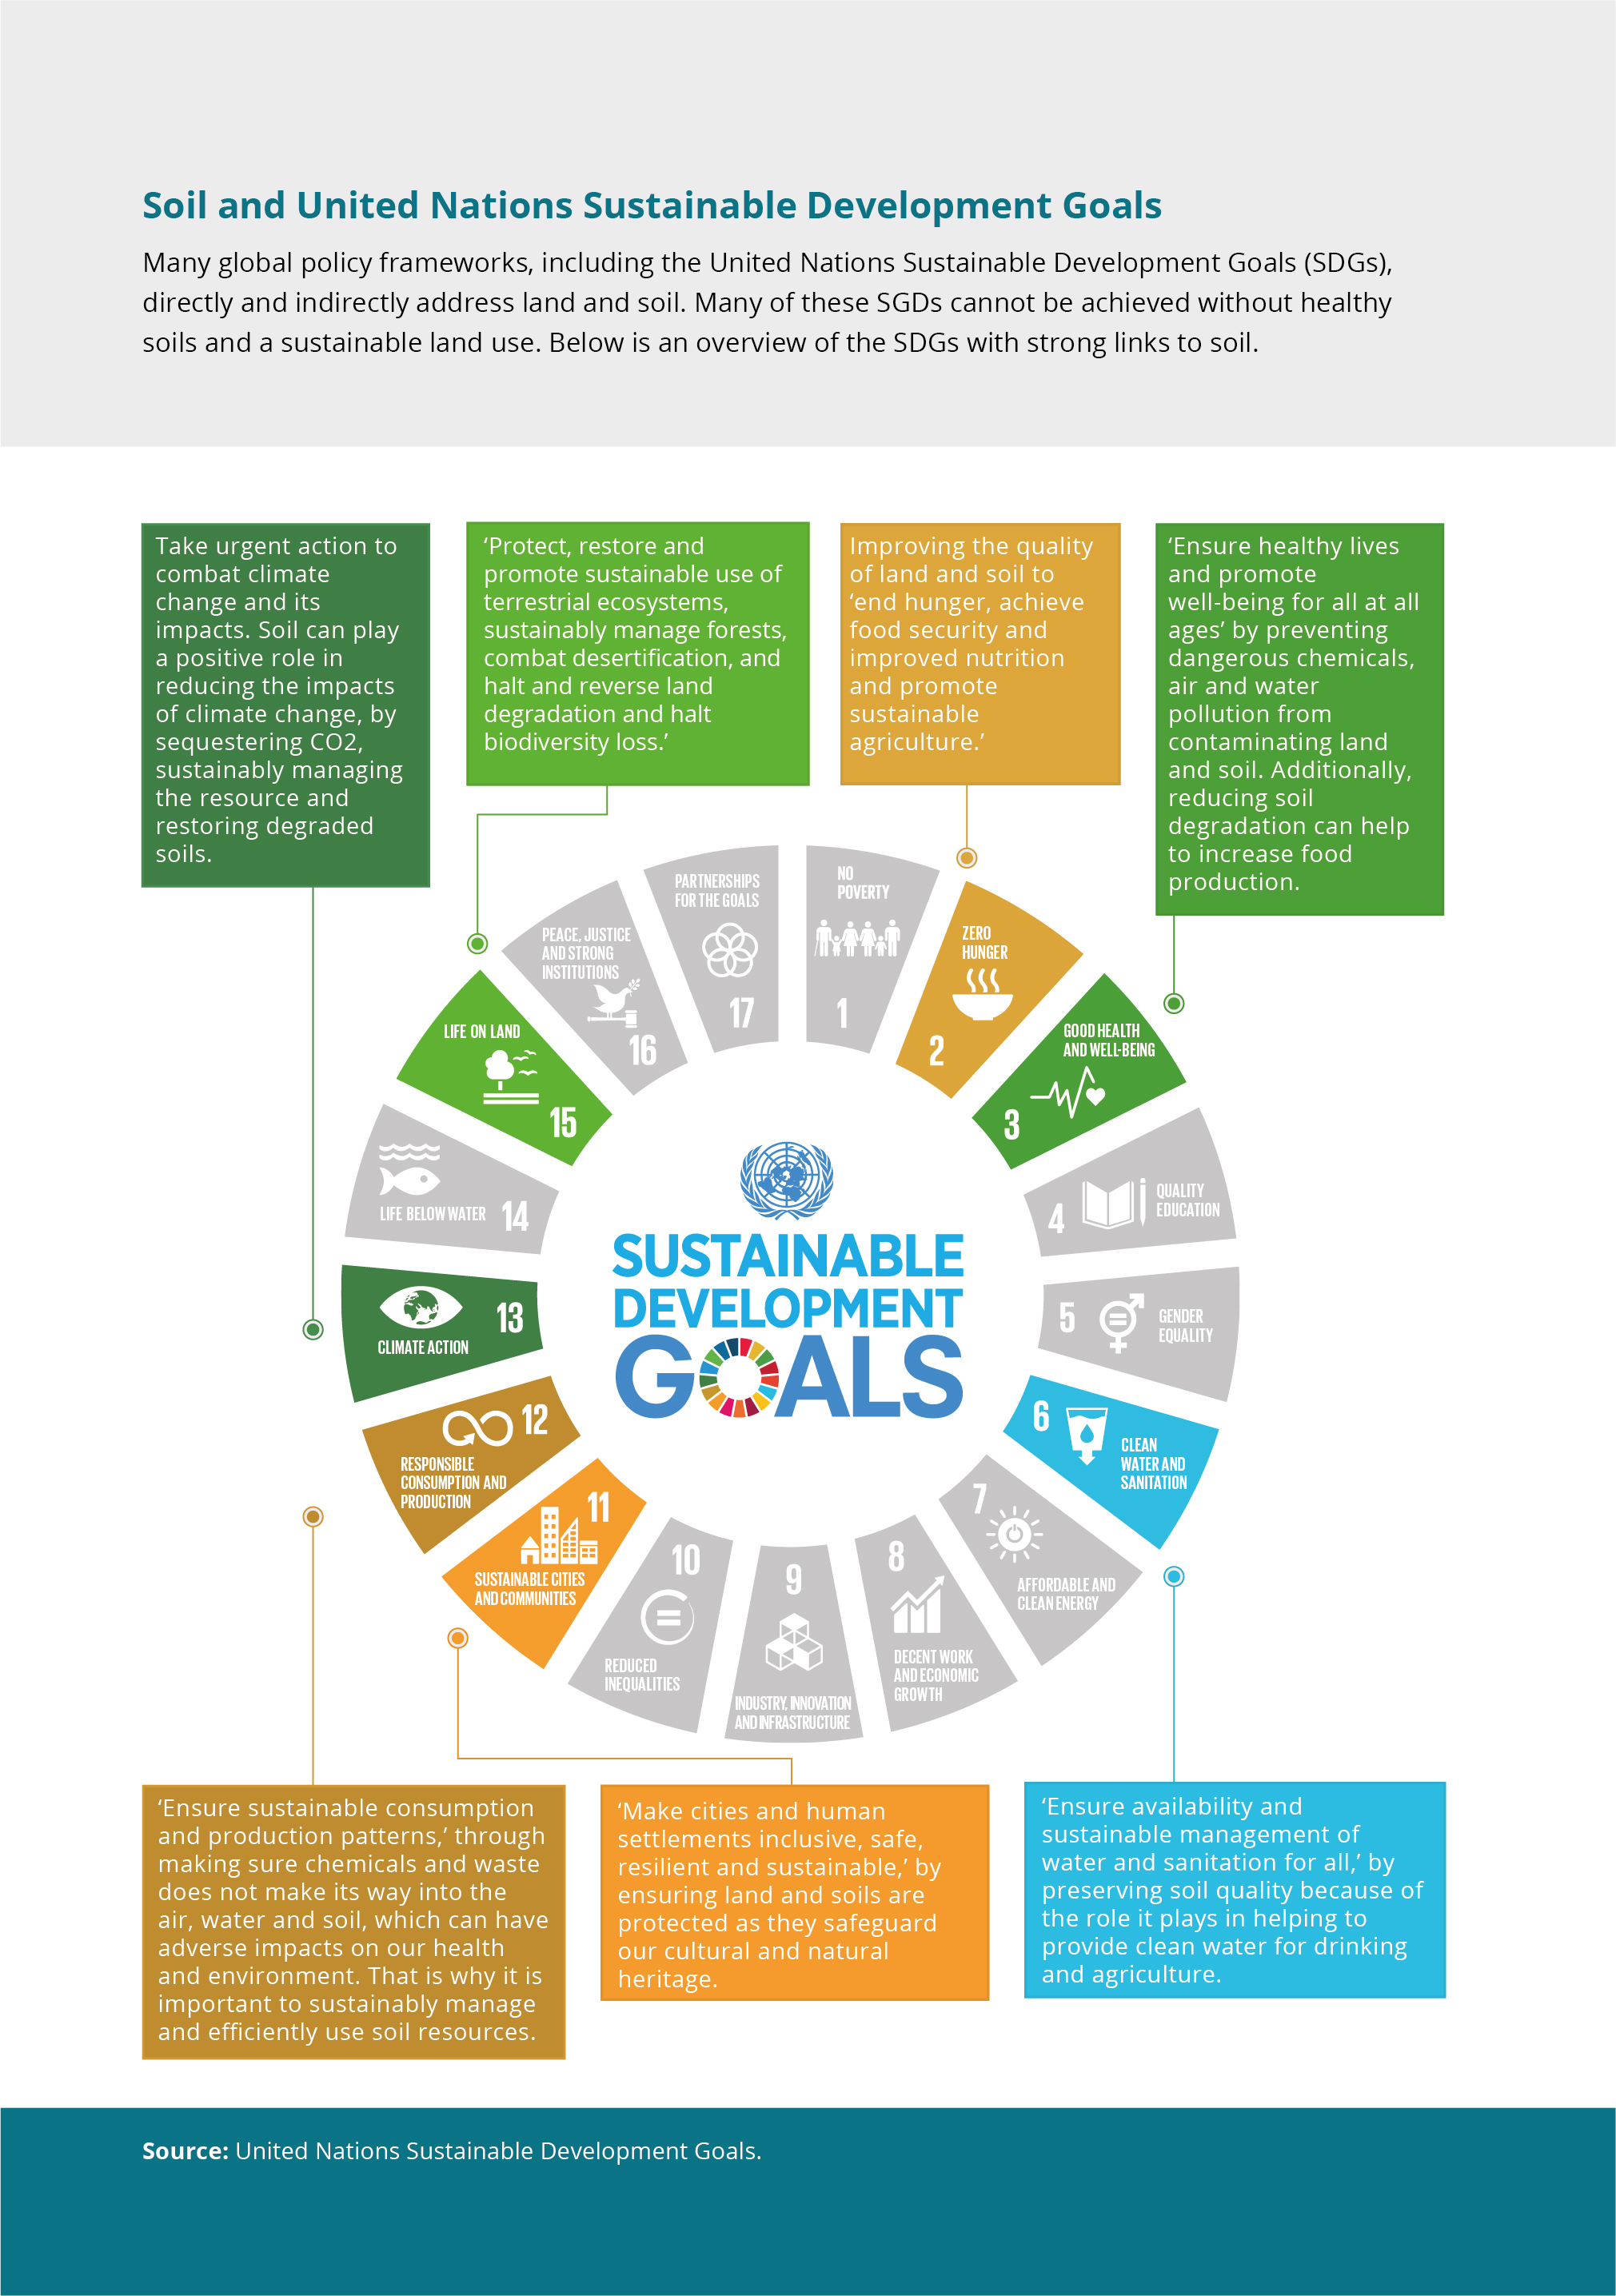 Many global policy frameworks, including the United Nations Sustainable Development Goals (SDGs),directly and indirectly address land and soil. Many of these SGDs cannot be achieved without healthysoils and a sustainable land use. Below is an overview of the SDGs with strong links to soil.